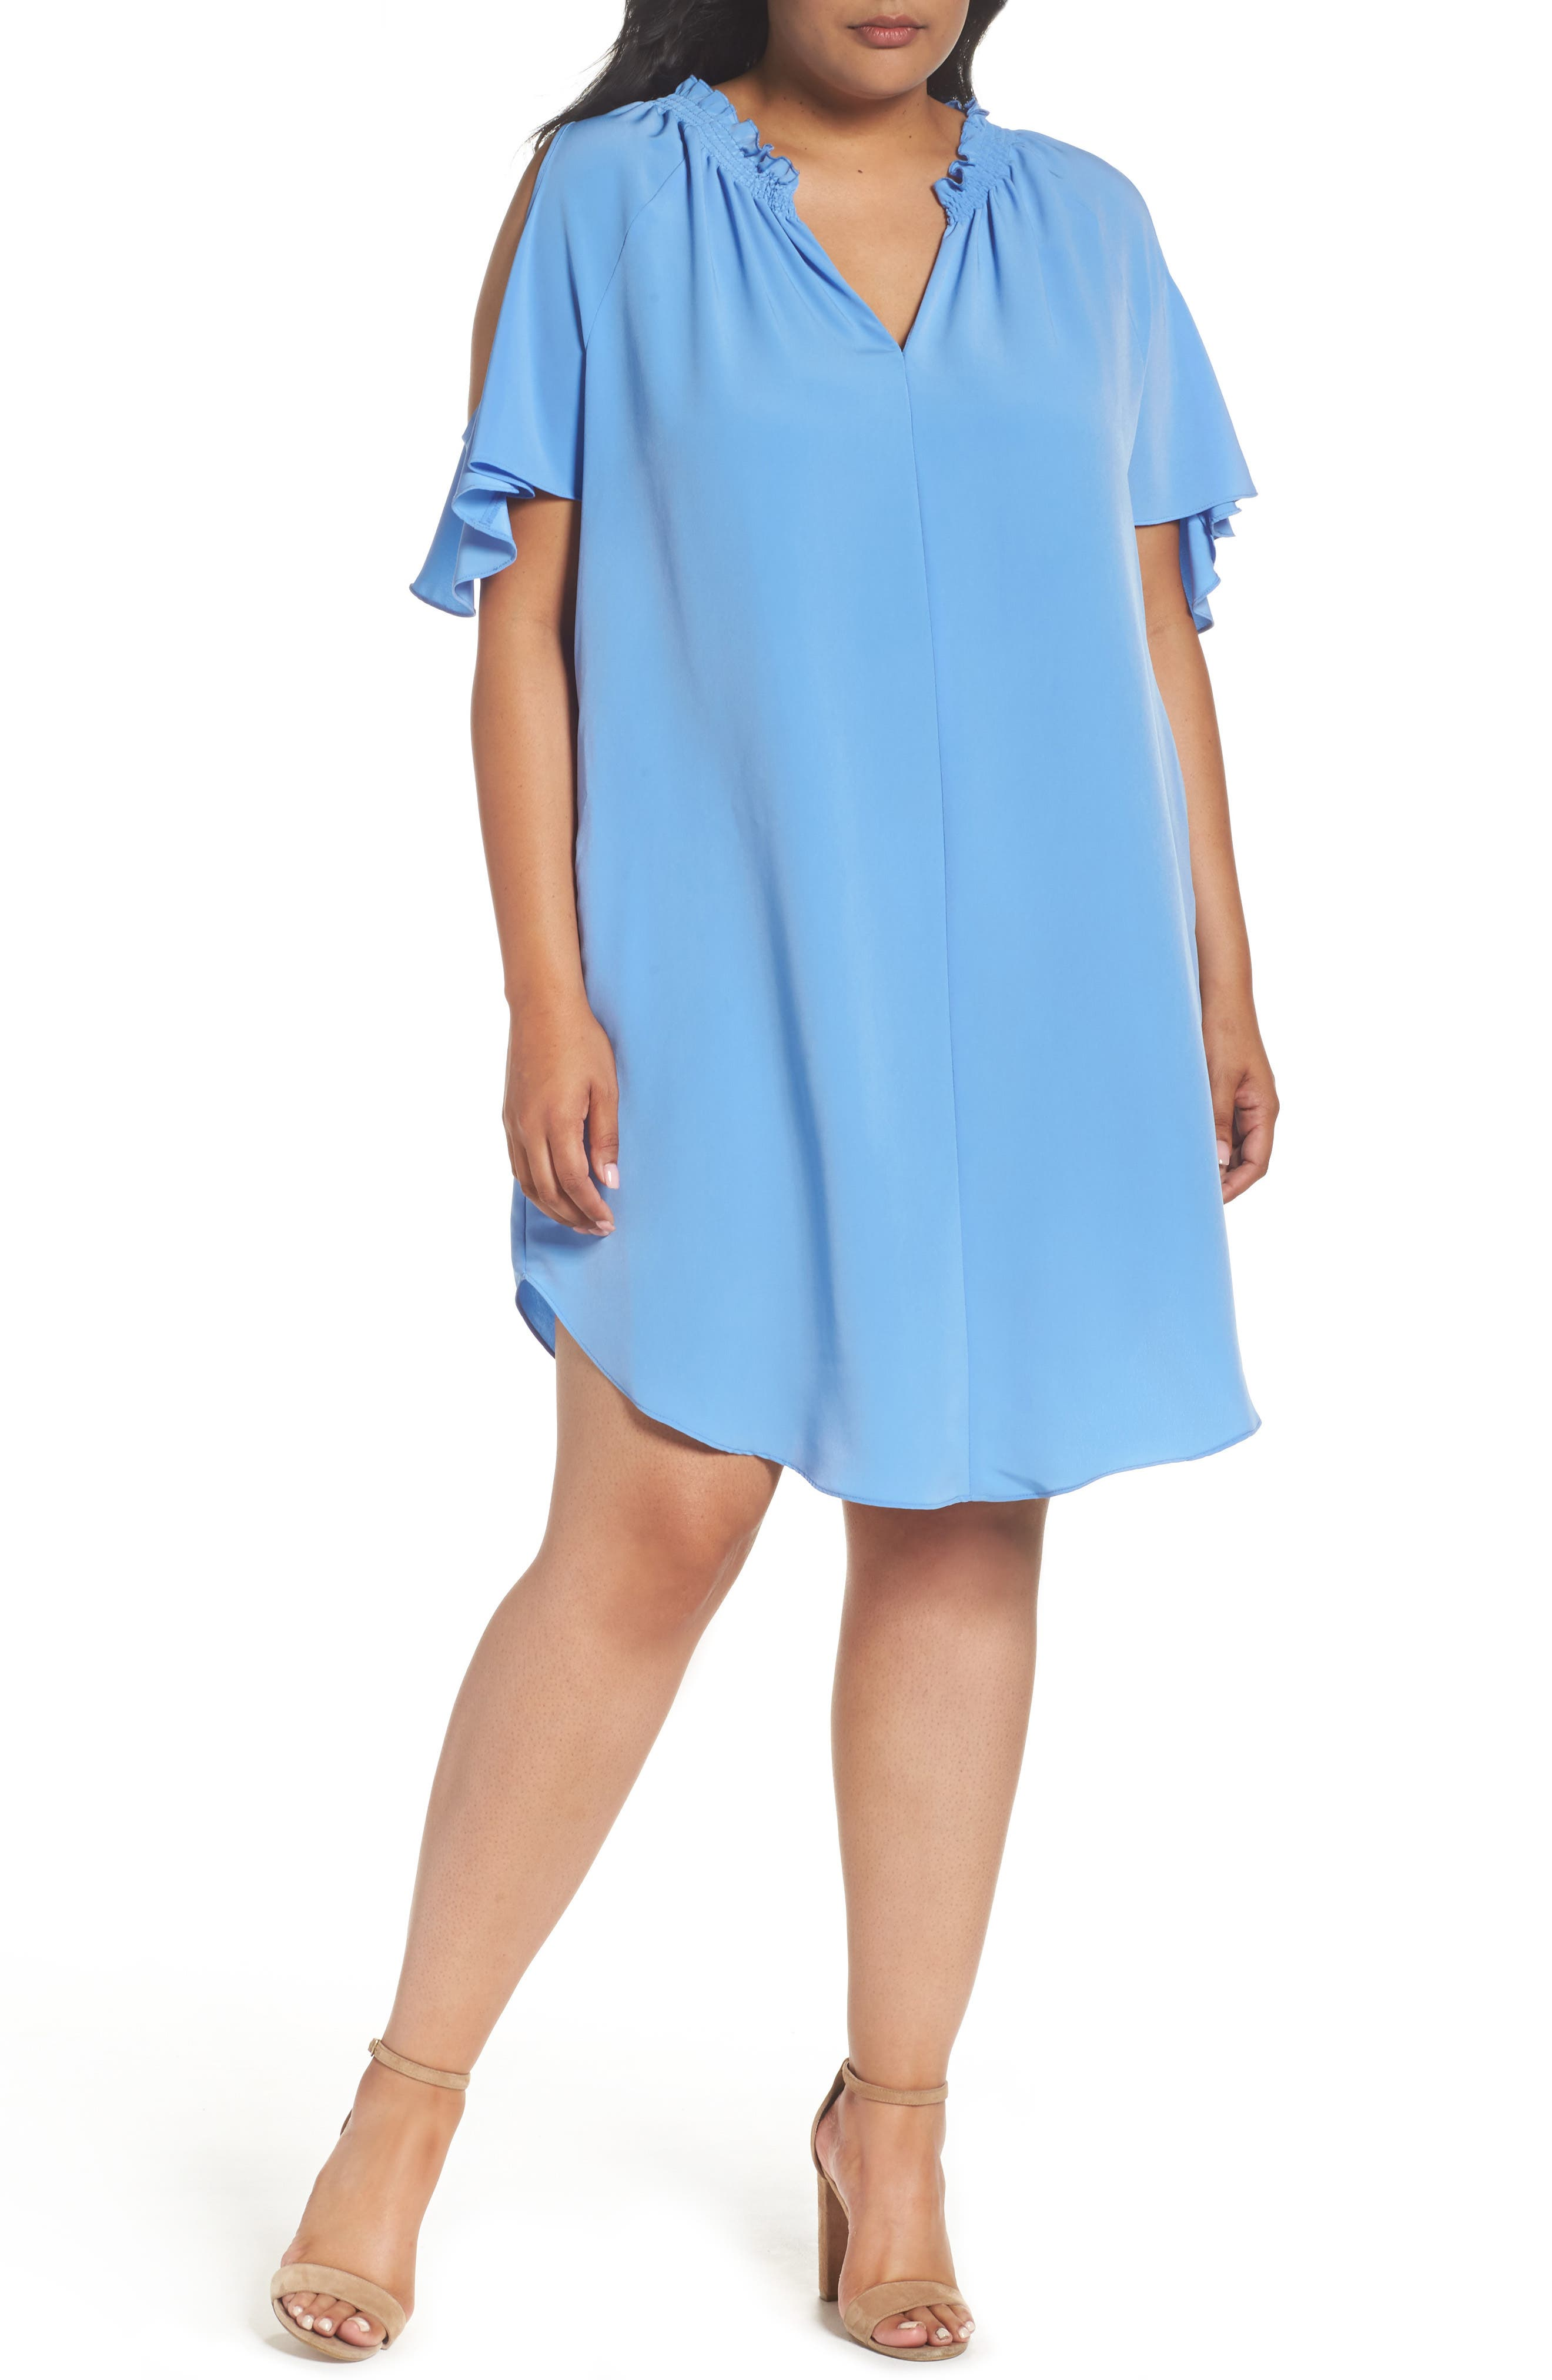 Elizabeth Cold Shoulder Dress,                             Main thumbnail 1, color,                             461